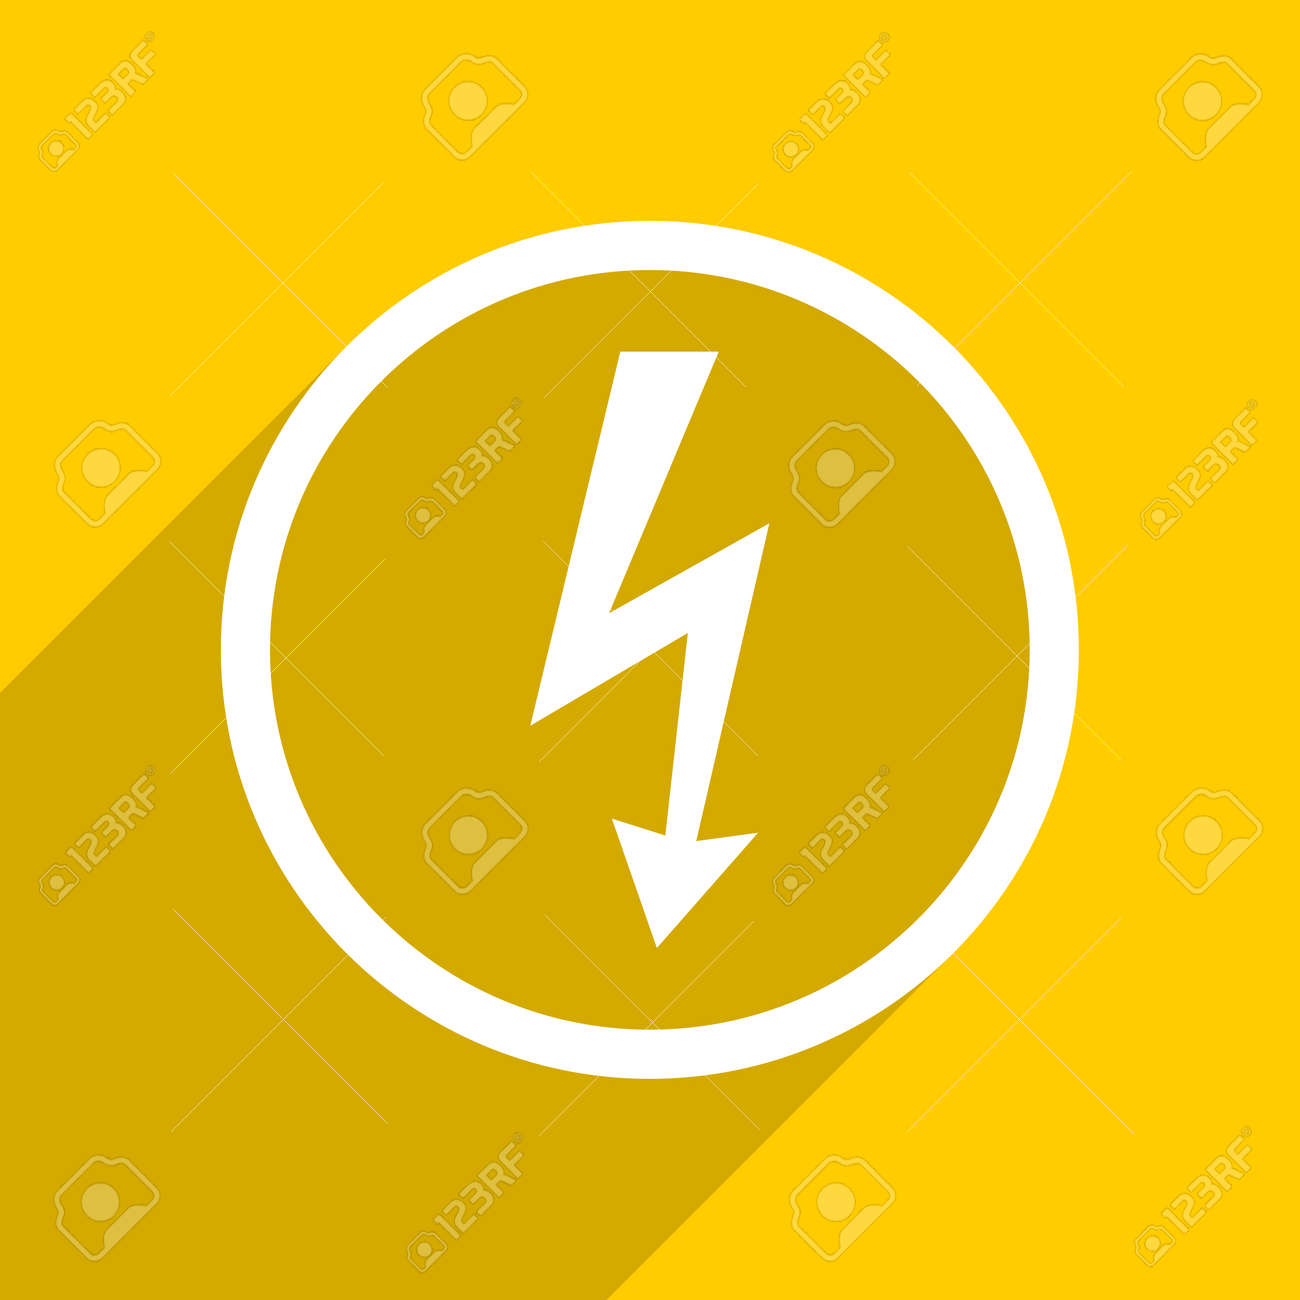 Yellow Flat Design Bolt Web Modern Icon For Mobile App And Internet Stock Photo Picture And Royalty Free Image Image 56765350